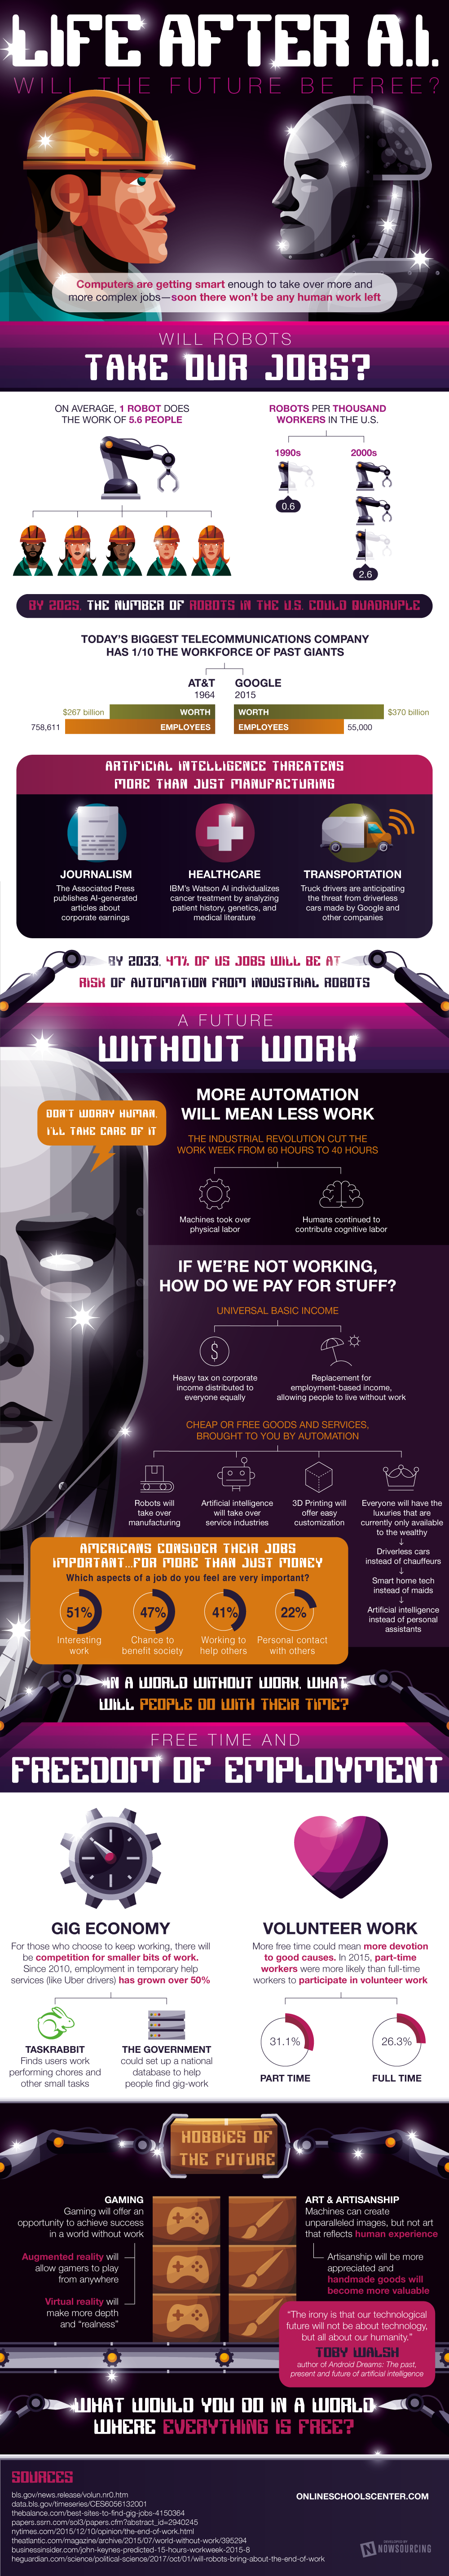 What Will Life Look Like After Artificial Intelligence? [Infographic] 1